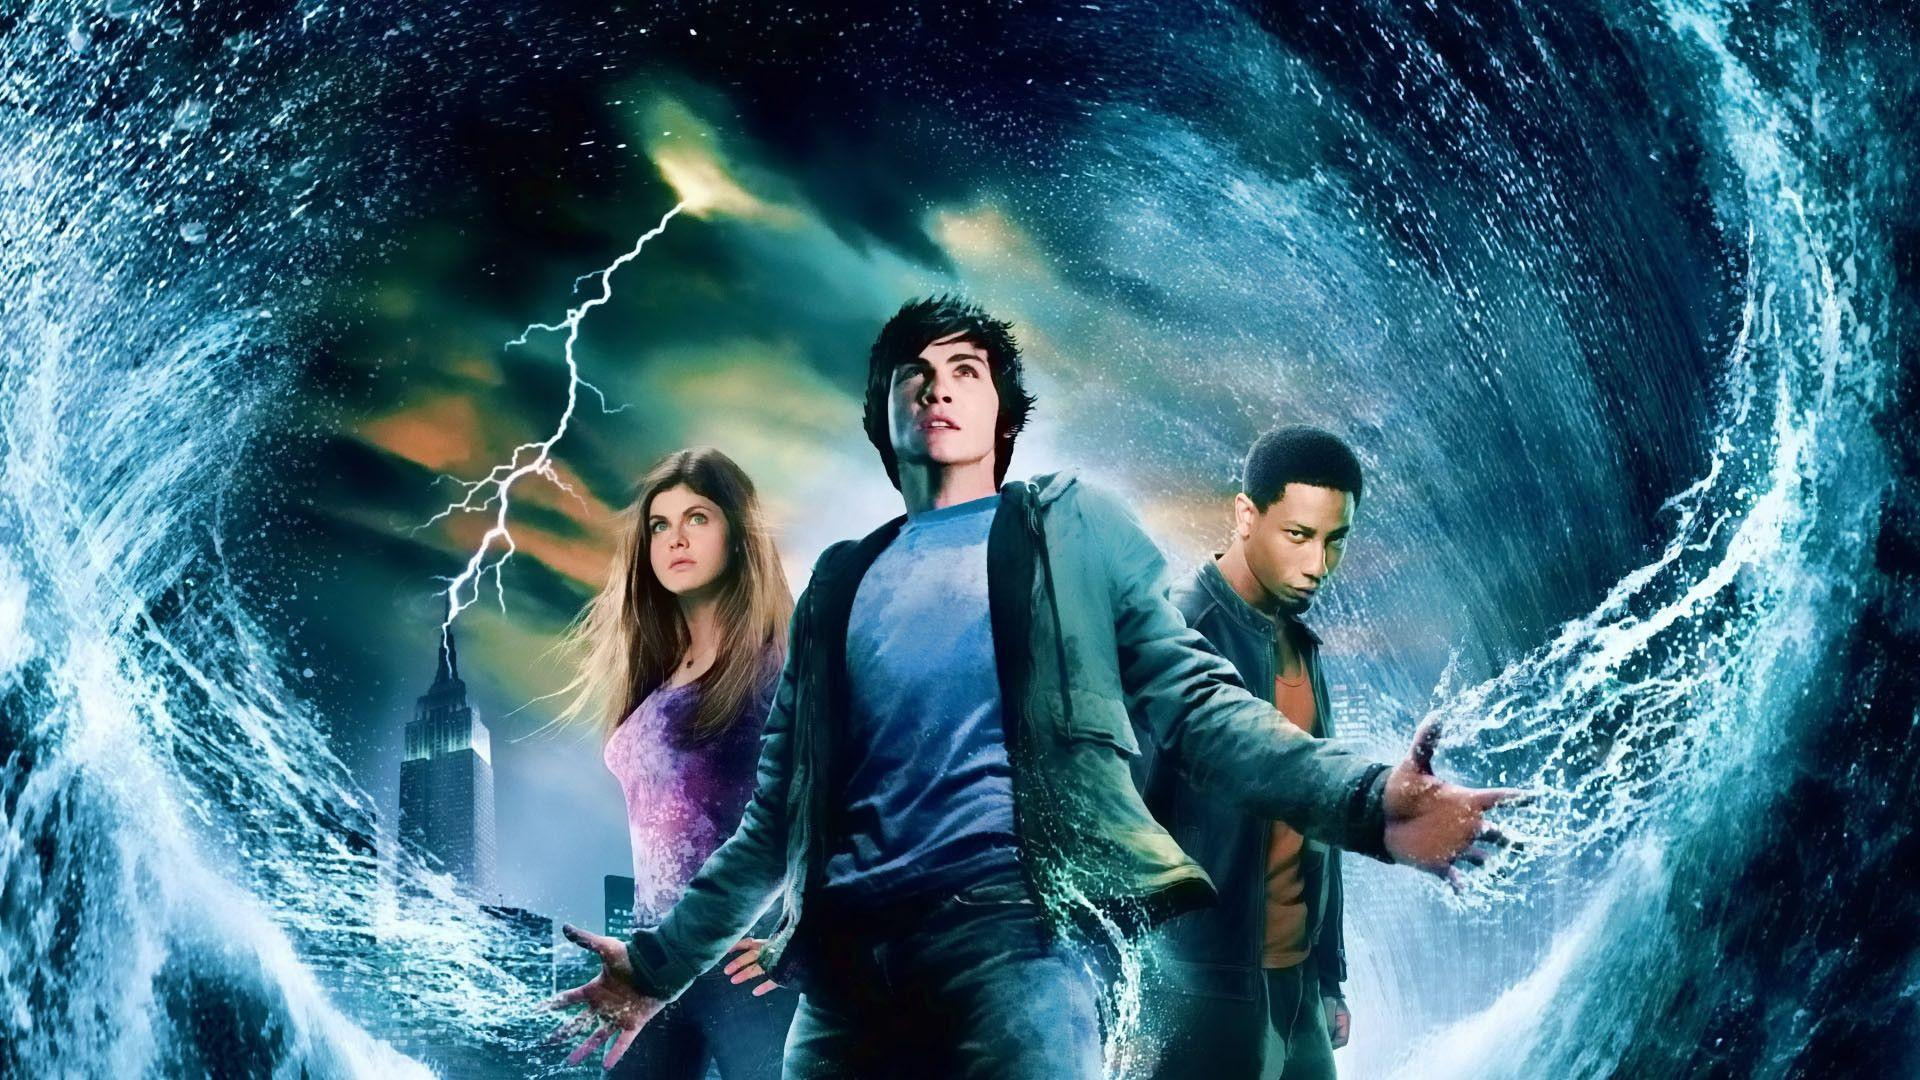 Percy Jackson Wallpapers